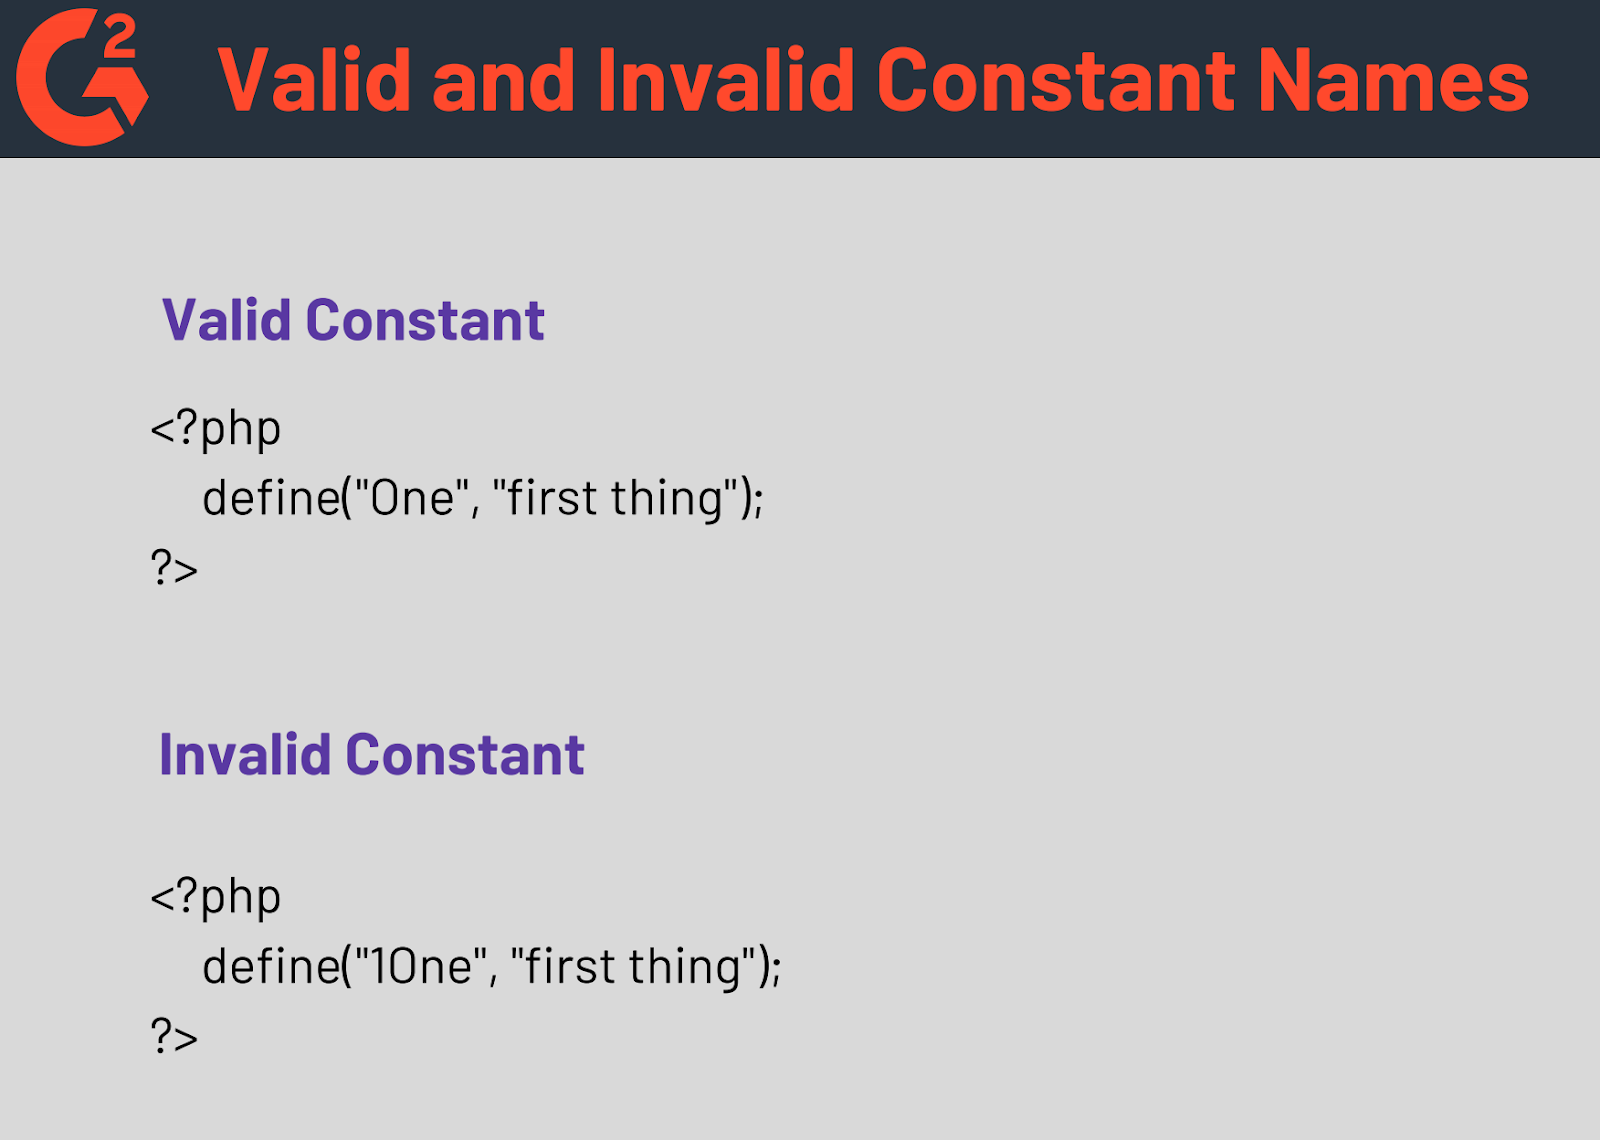 Valid and Invalid Constant Names in PHP